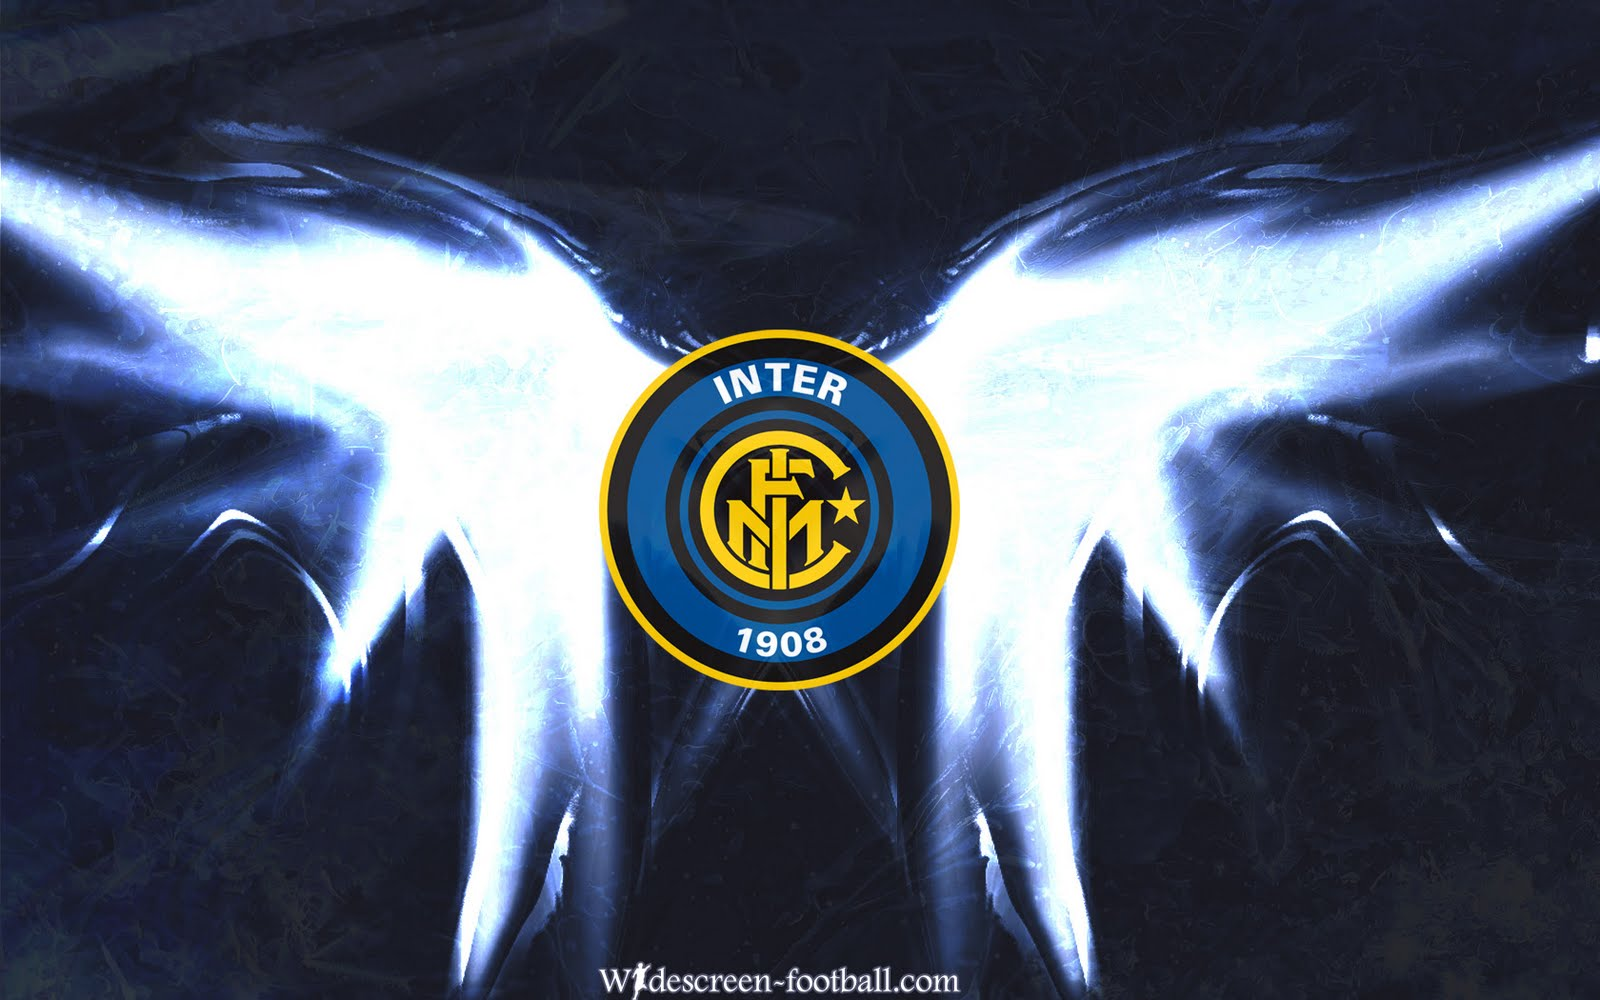 milan inter - photo #44